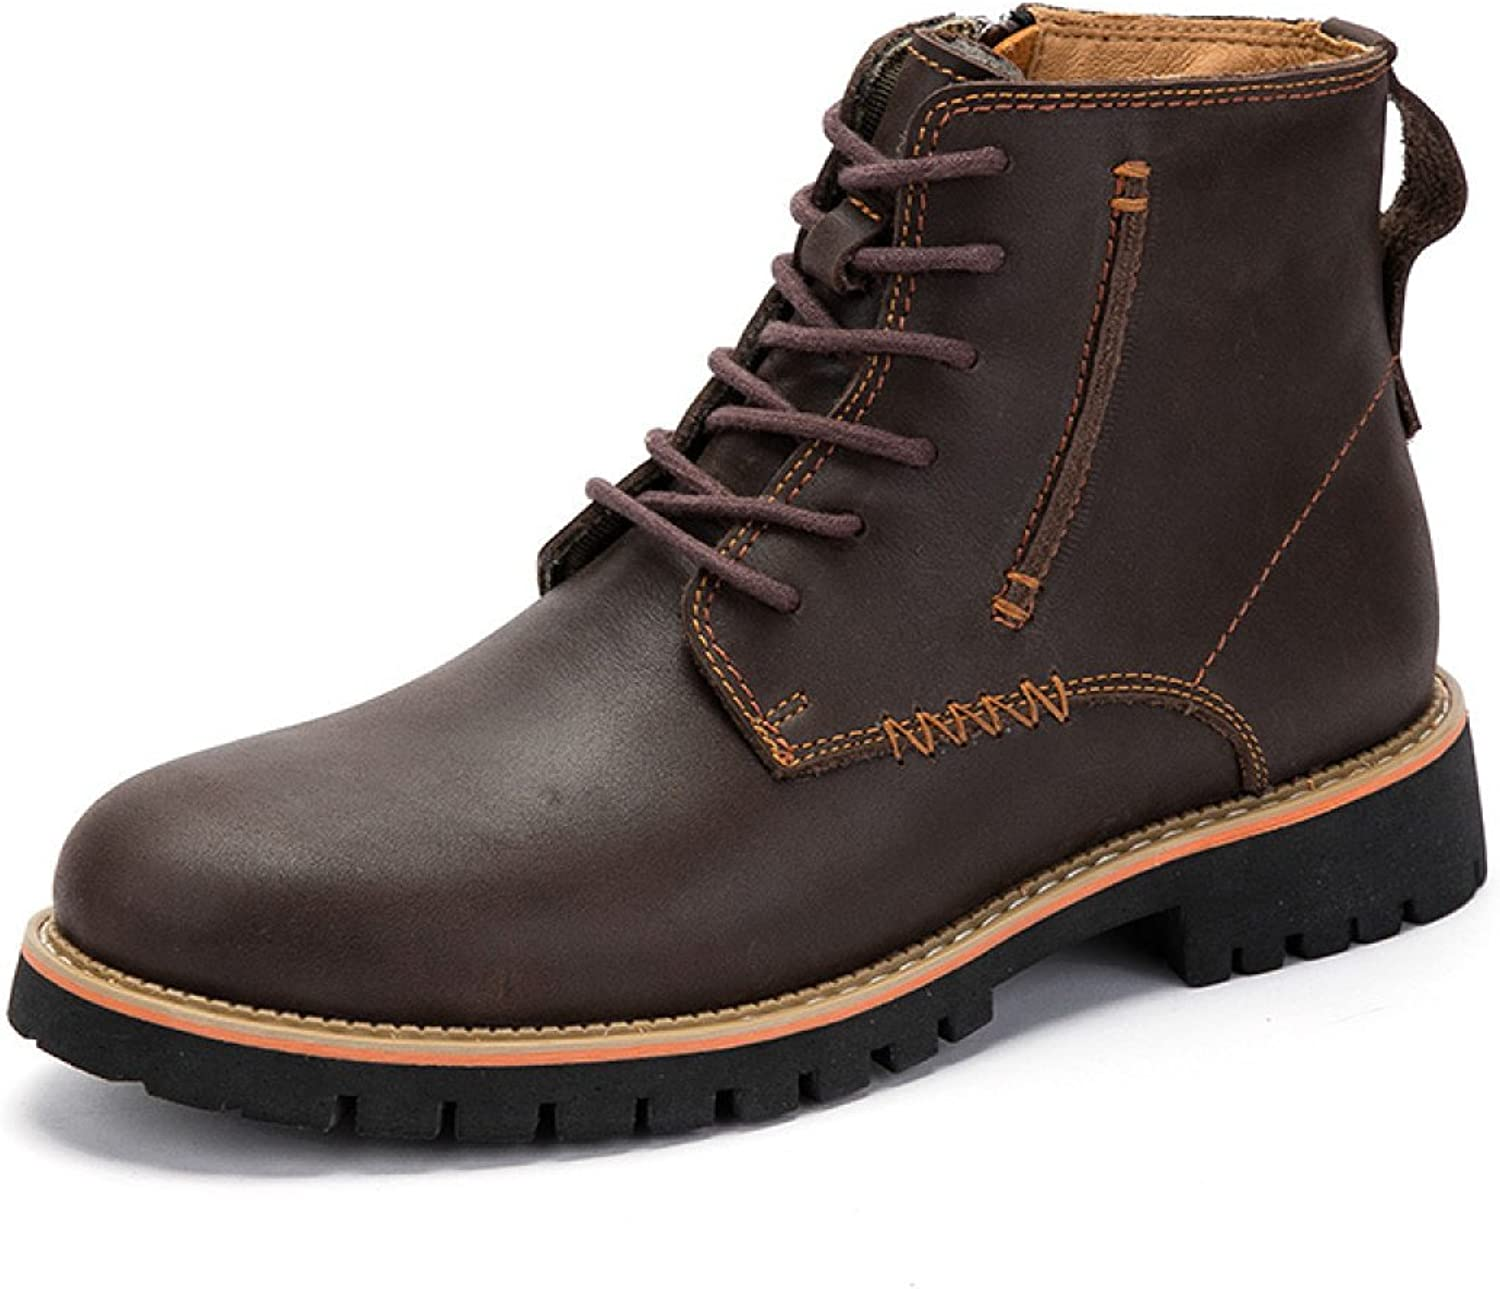 Autumn And Winter England Men's Boots High To Help Tooling shoes Business Leisure Men's shoes